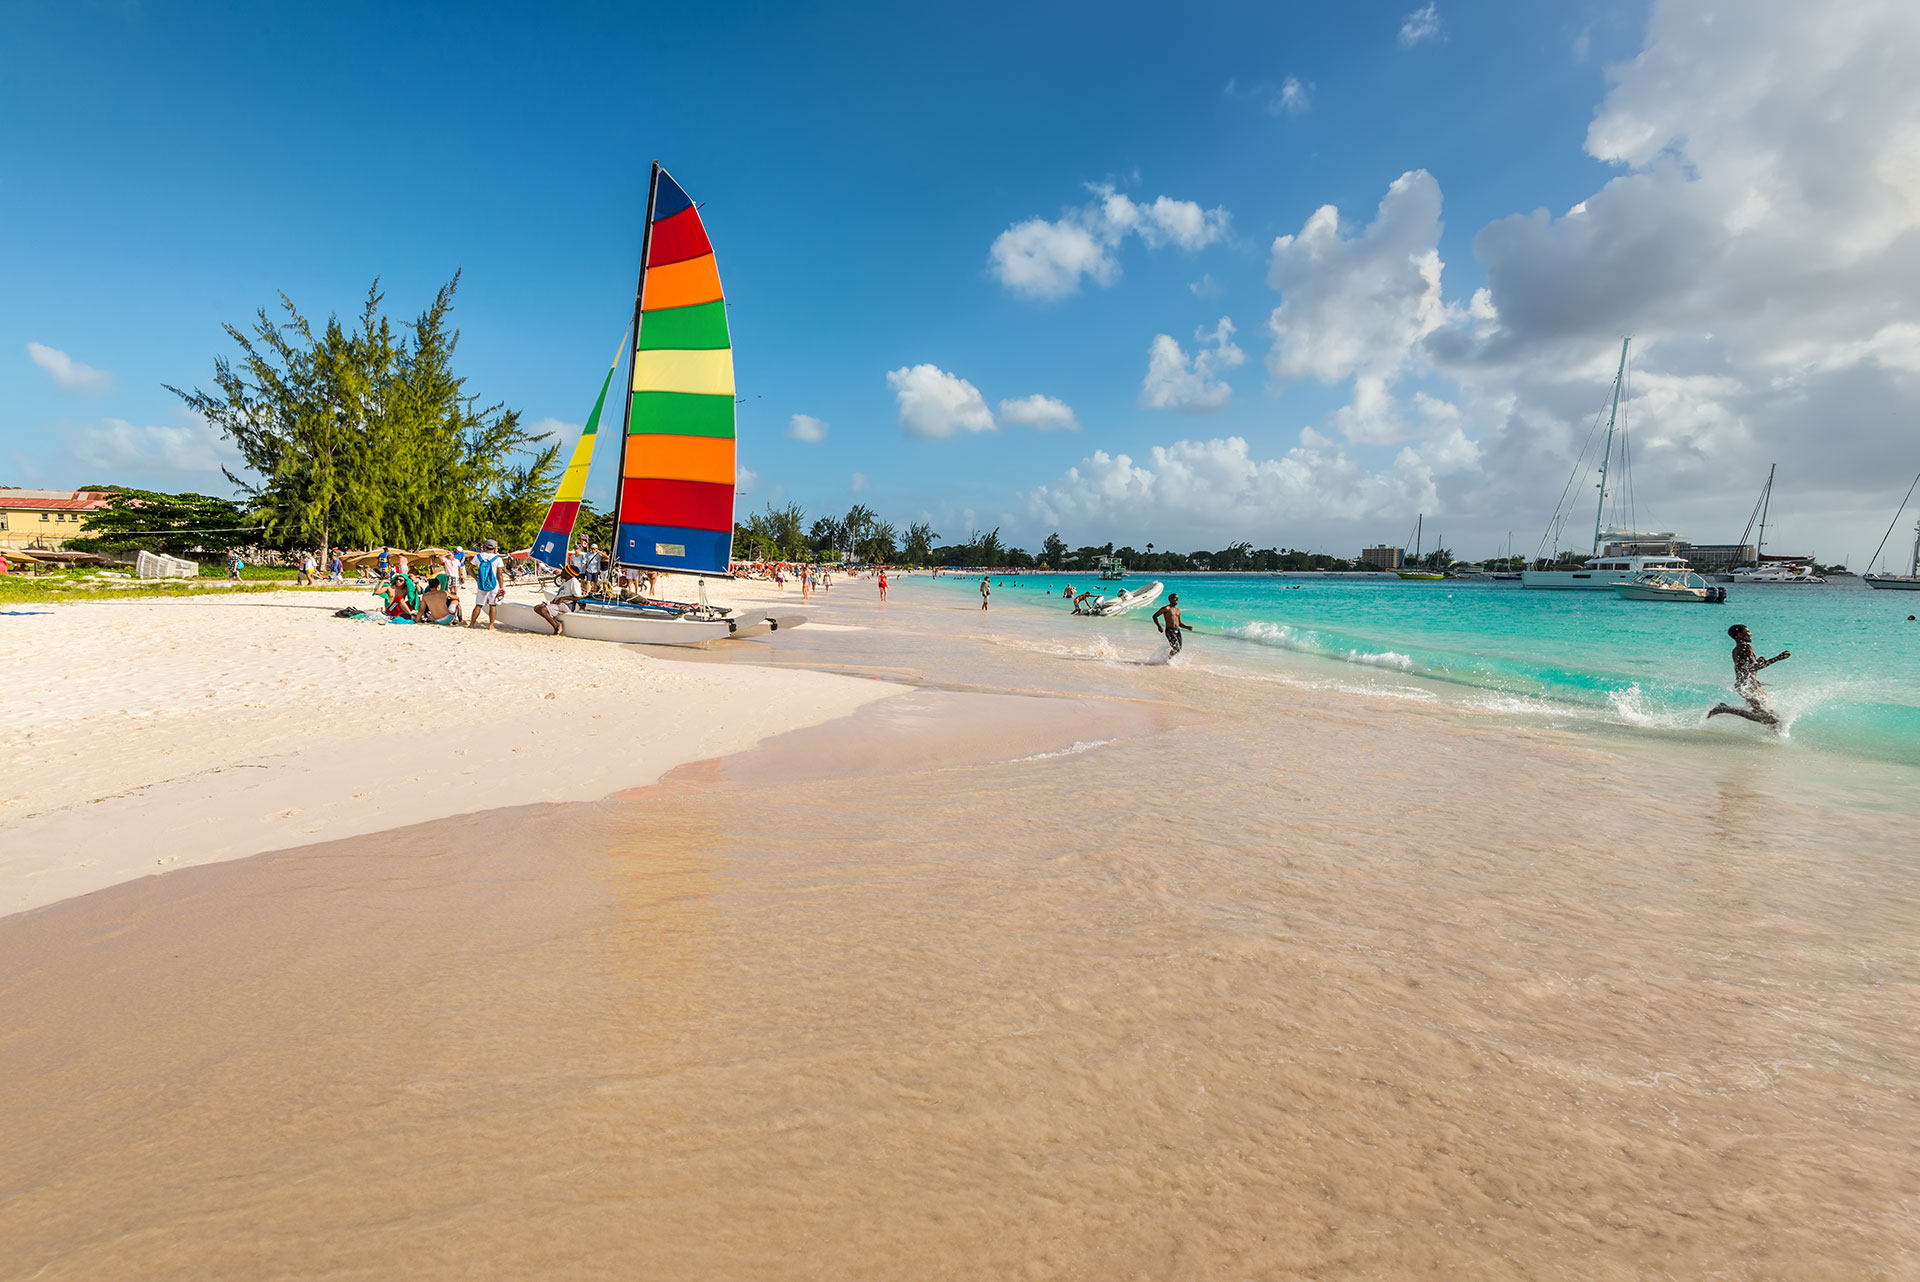 Beachs in Barbados